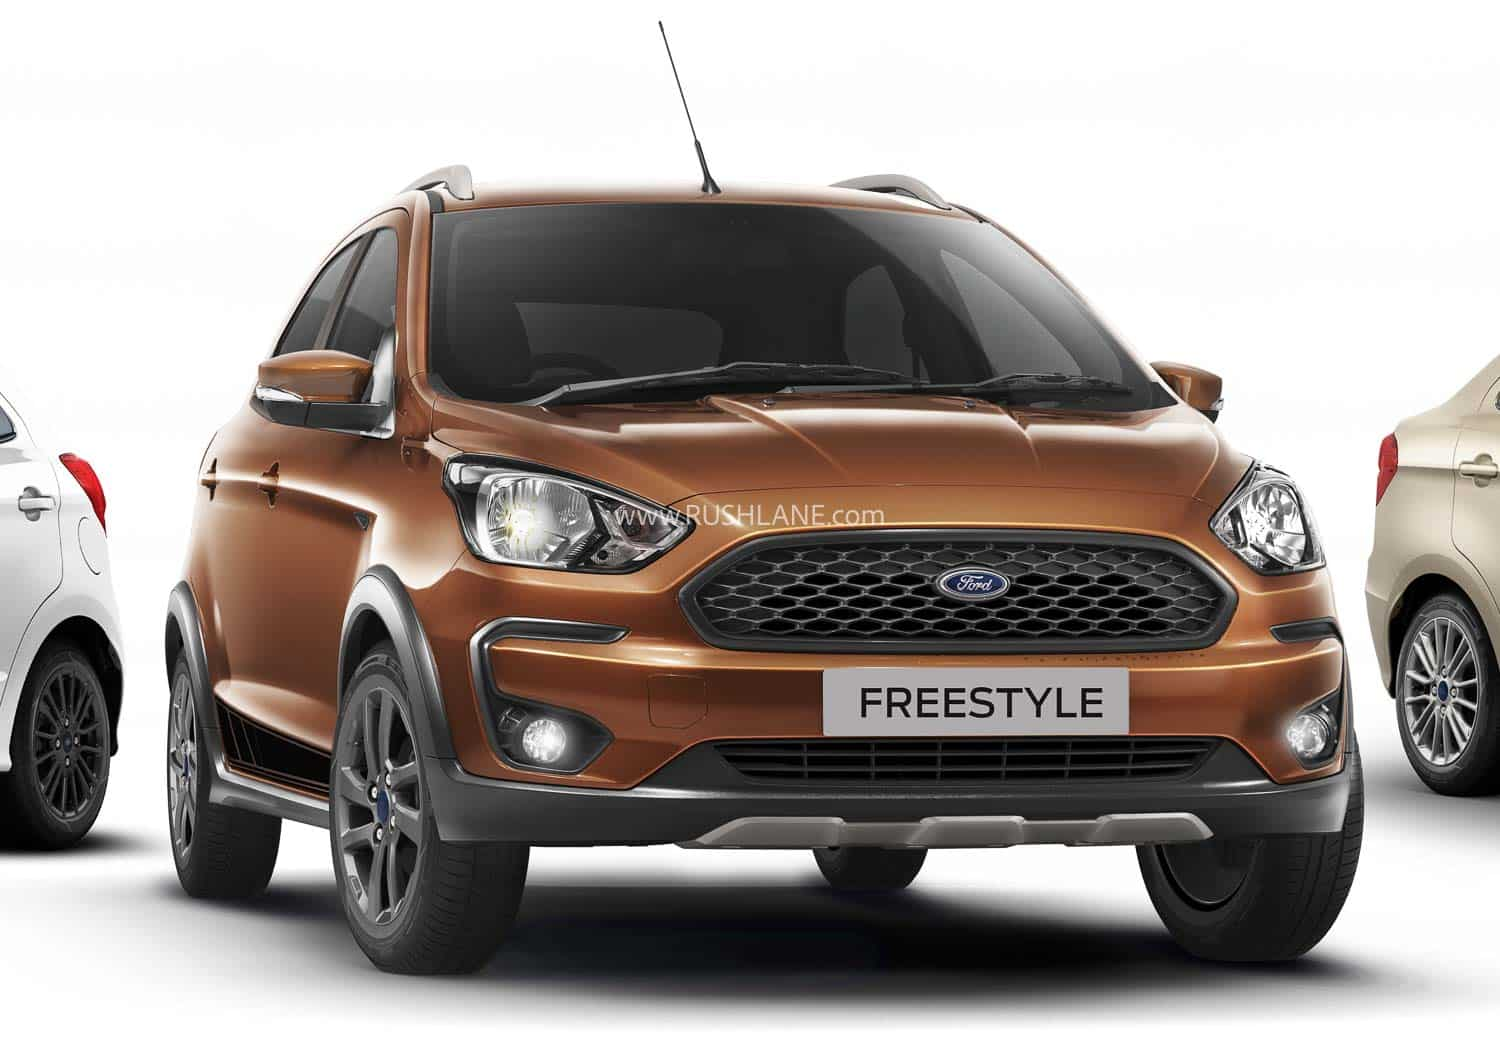 Ford Freestyle BS6